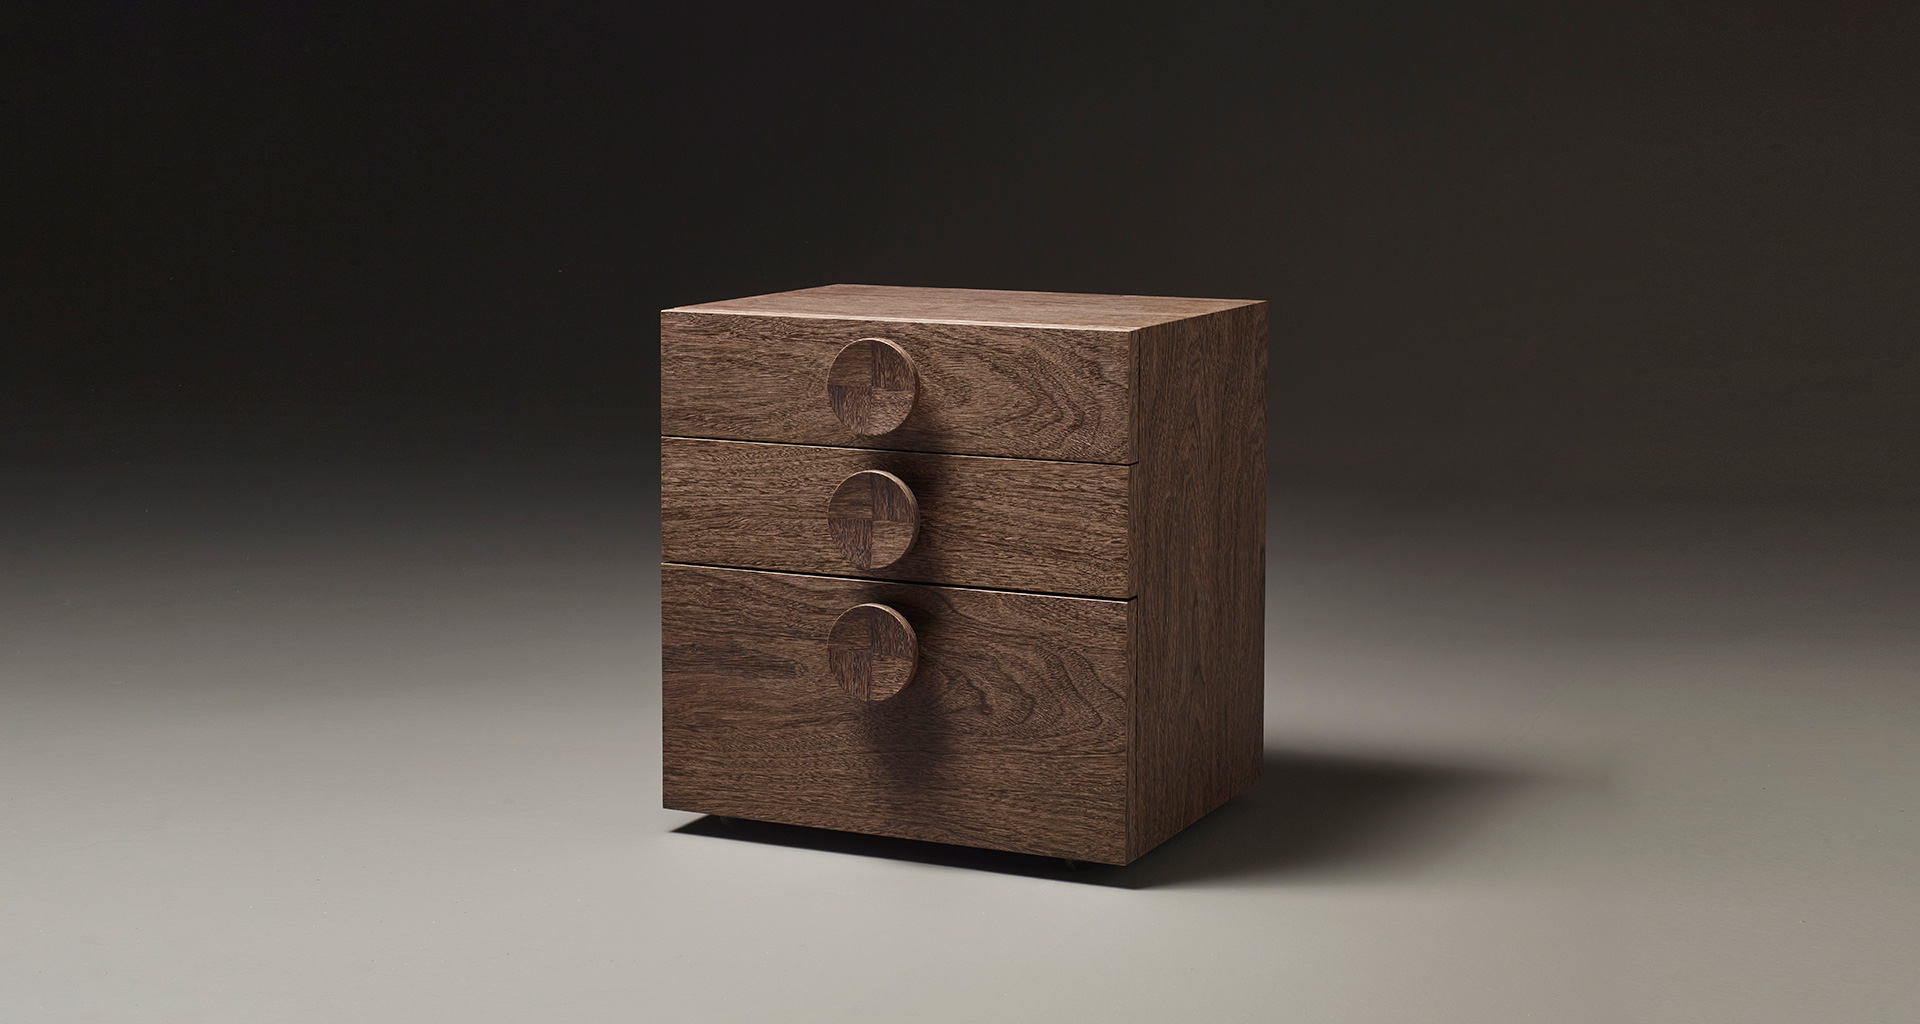 Dagoberto is a wooden bedside table with wheels and drawers from the Promemoria's catalogue | Promemoria